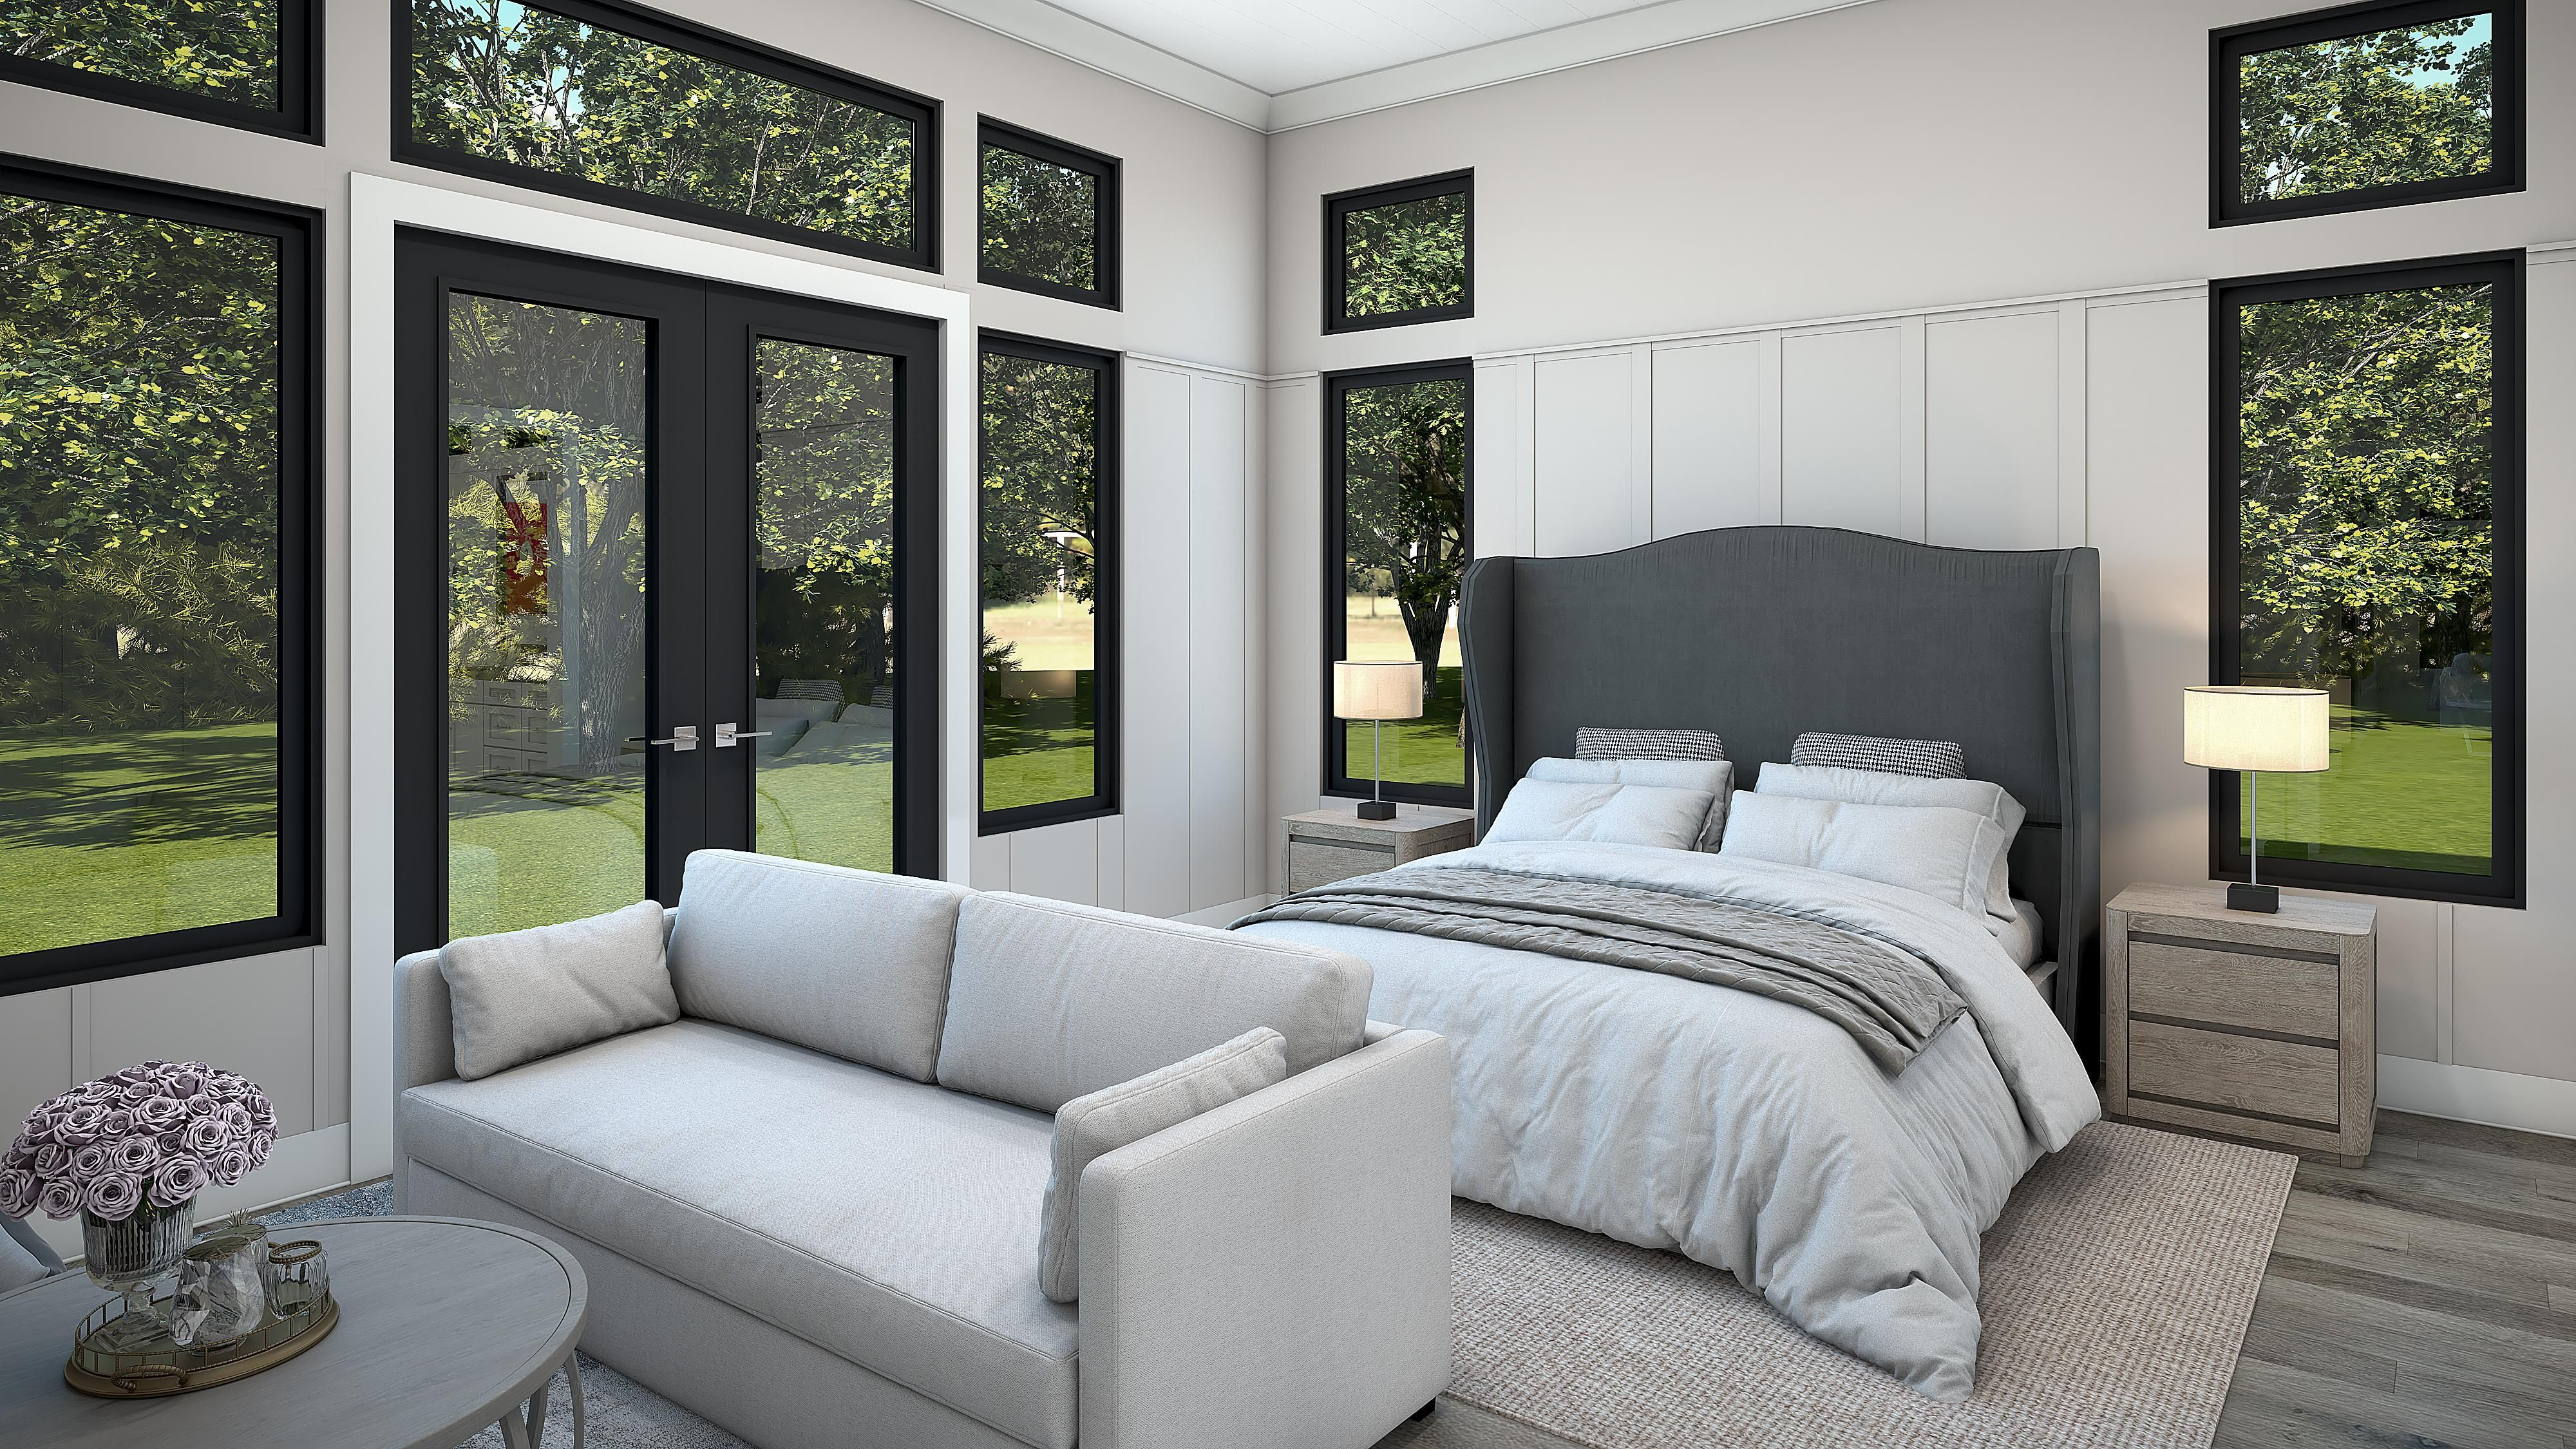 Bedroom featured in the Plan 3-C By Copper Valley  in Stockton-Lodi, CA